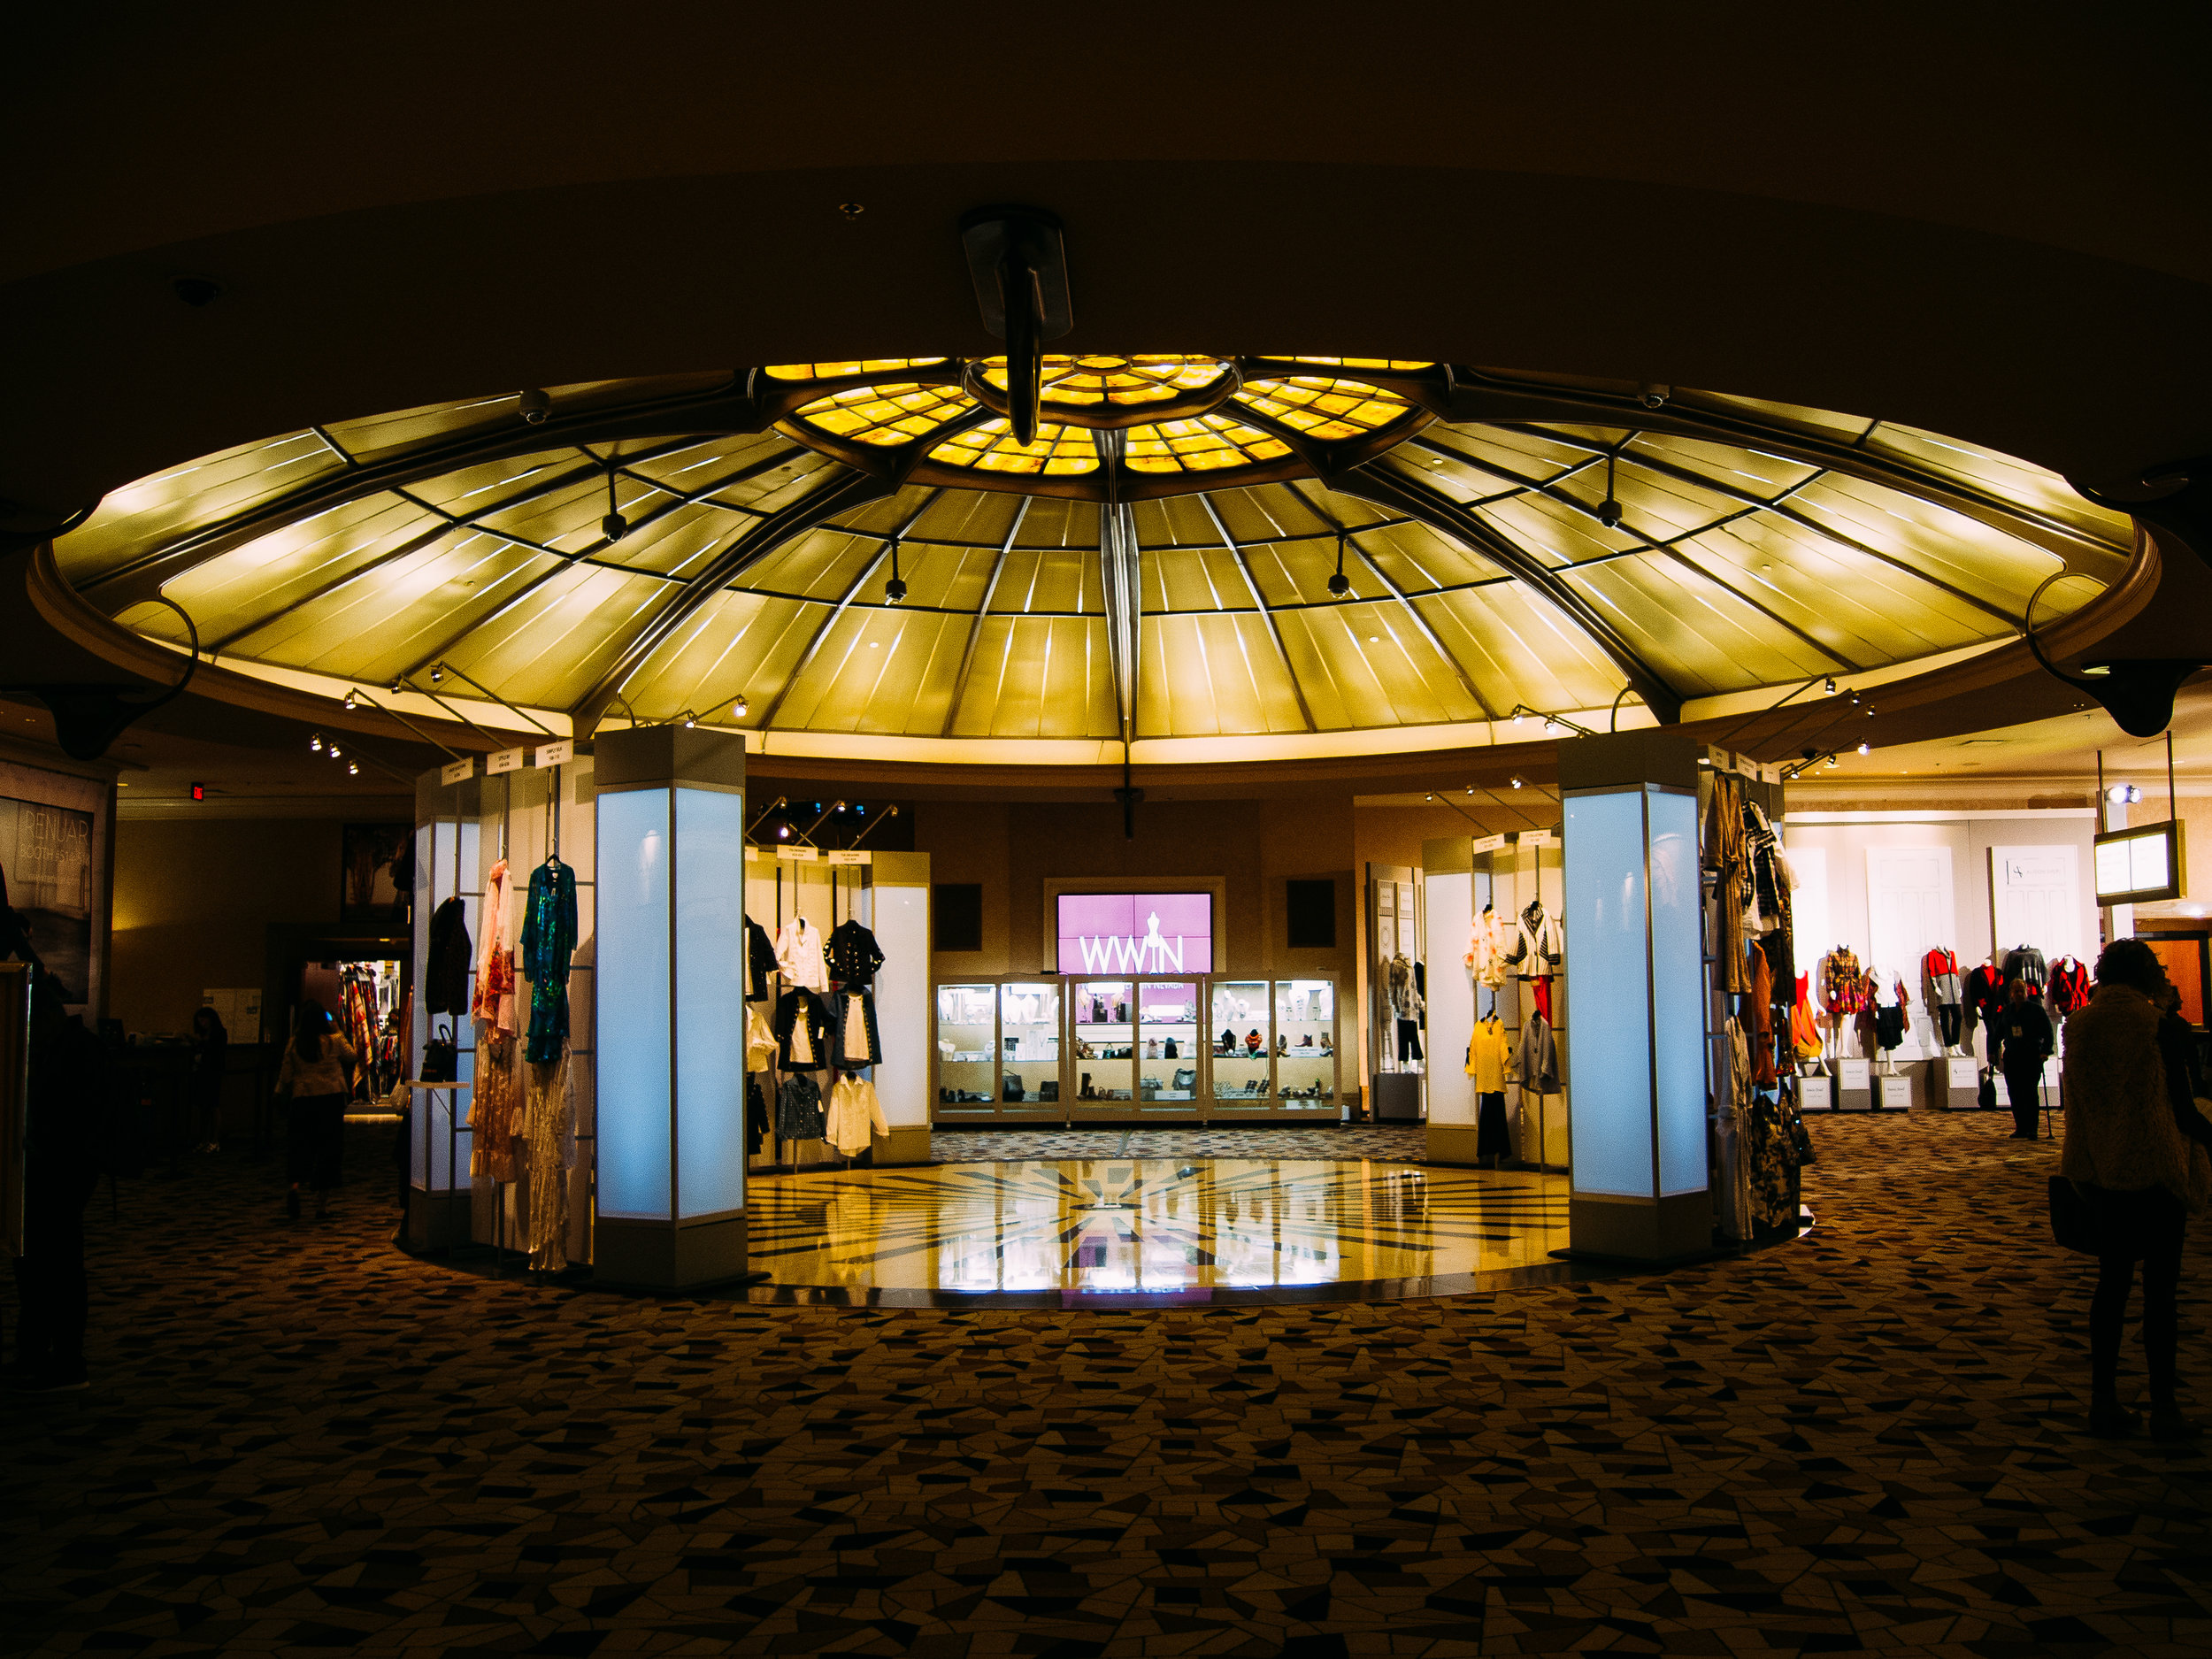 The entrance to WWIN fashion at Rio Hotel